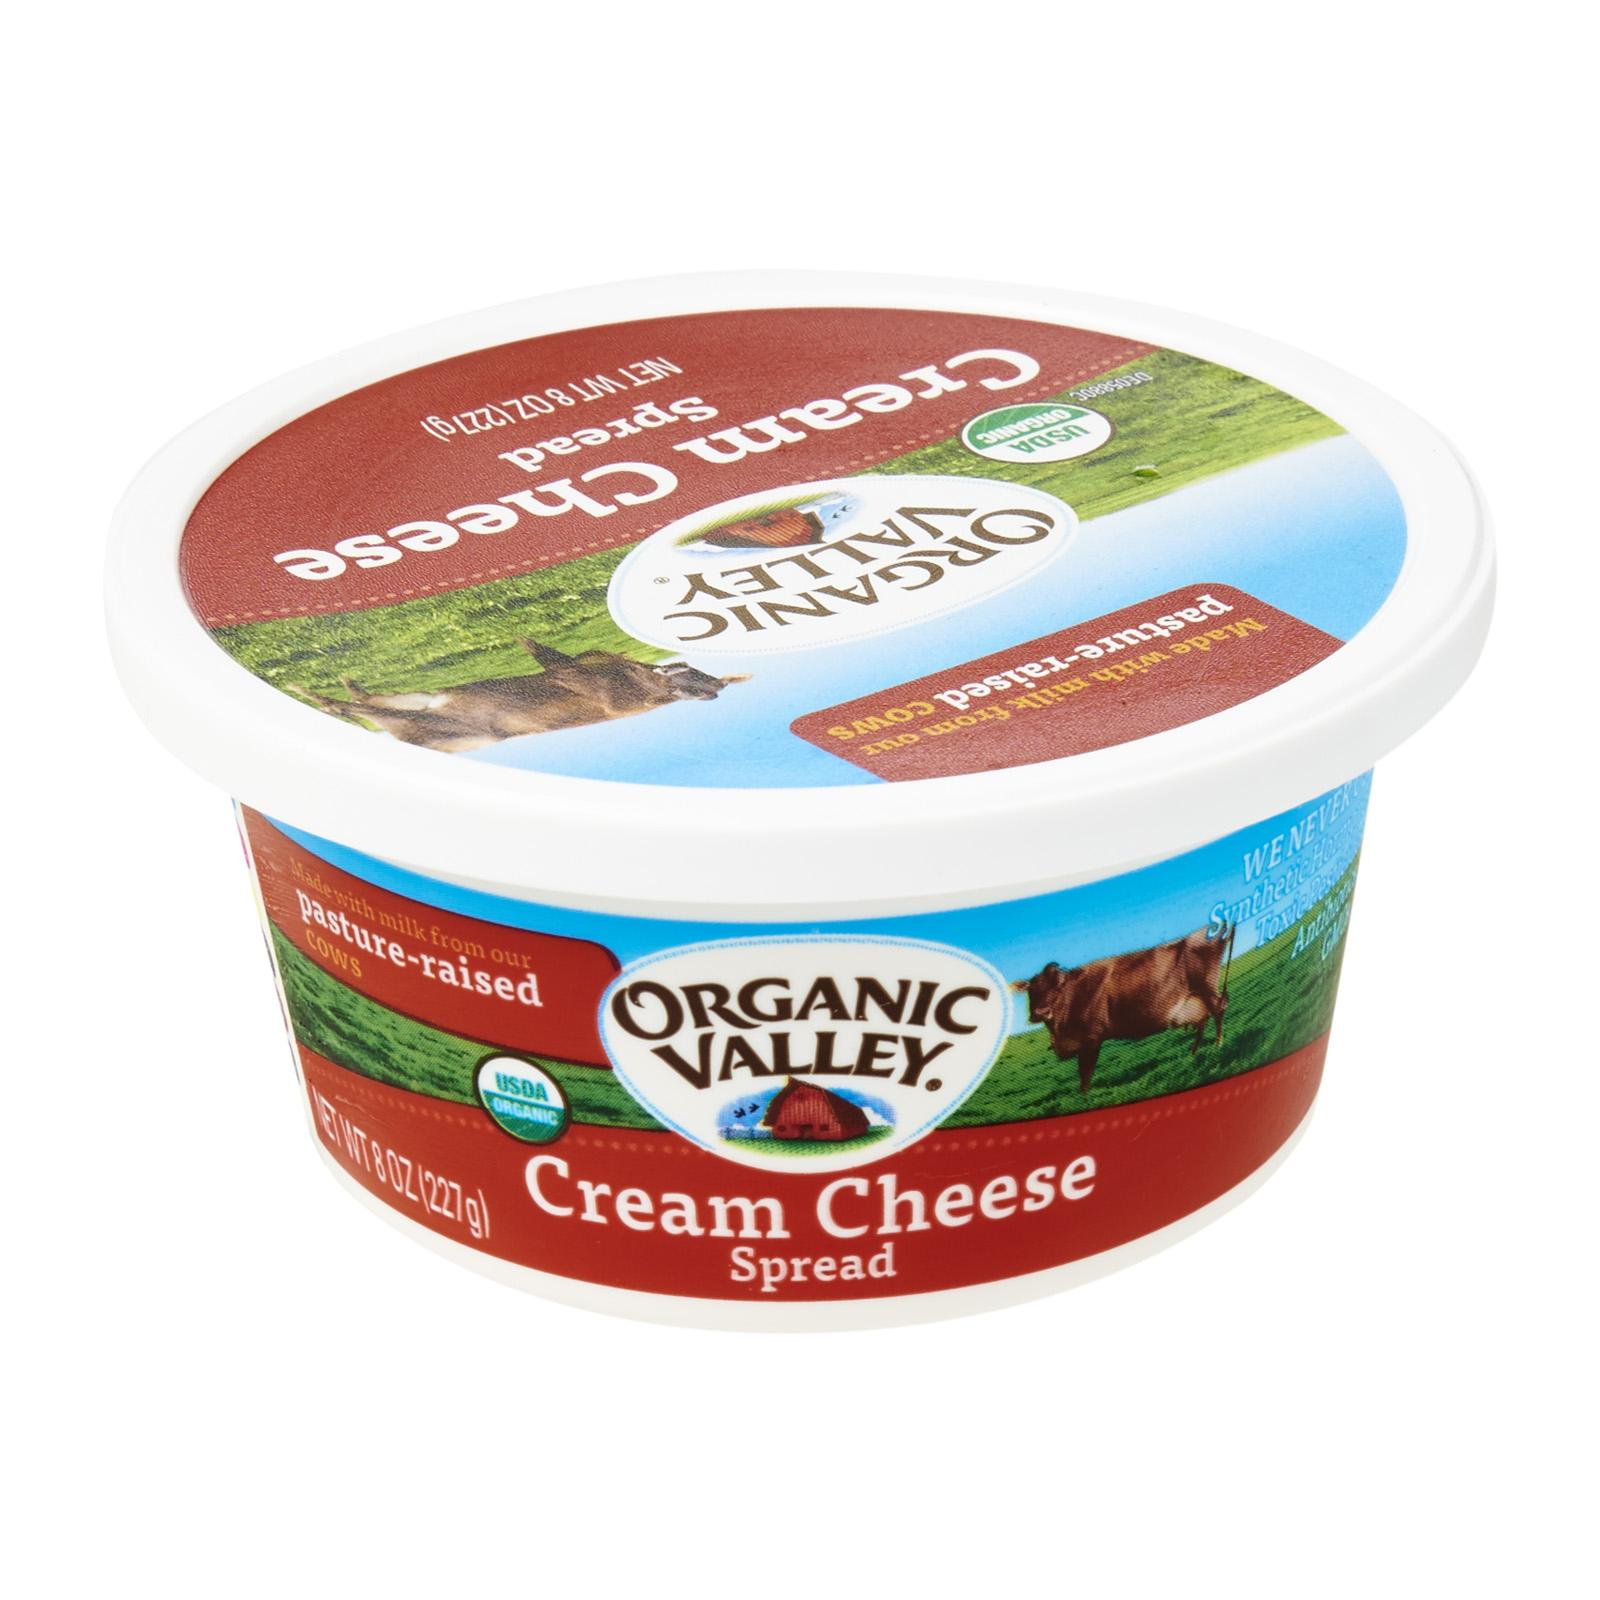 Organic Valley Cream Cheese Spread Tubs